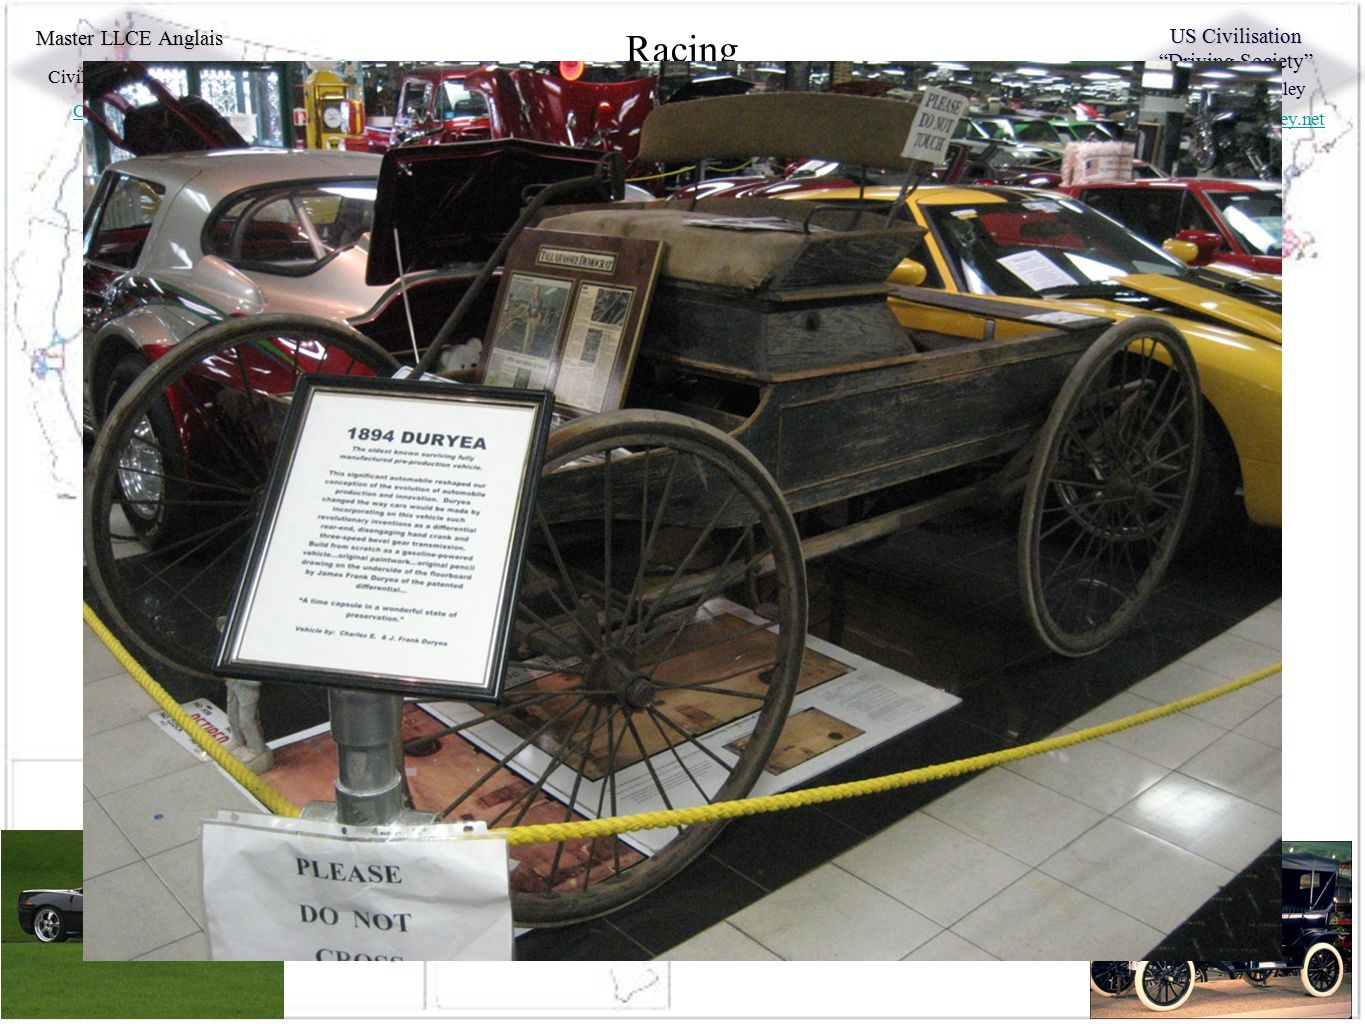 """Master LLCE Anglais Civilisation Moderne Cars in the US US Civilisation """"Driving Society"""" Charles C. Hadley http://charleshadley.net Racing Going Nowh"""